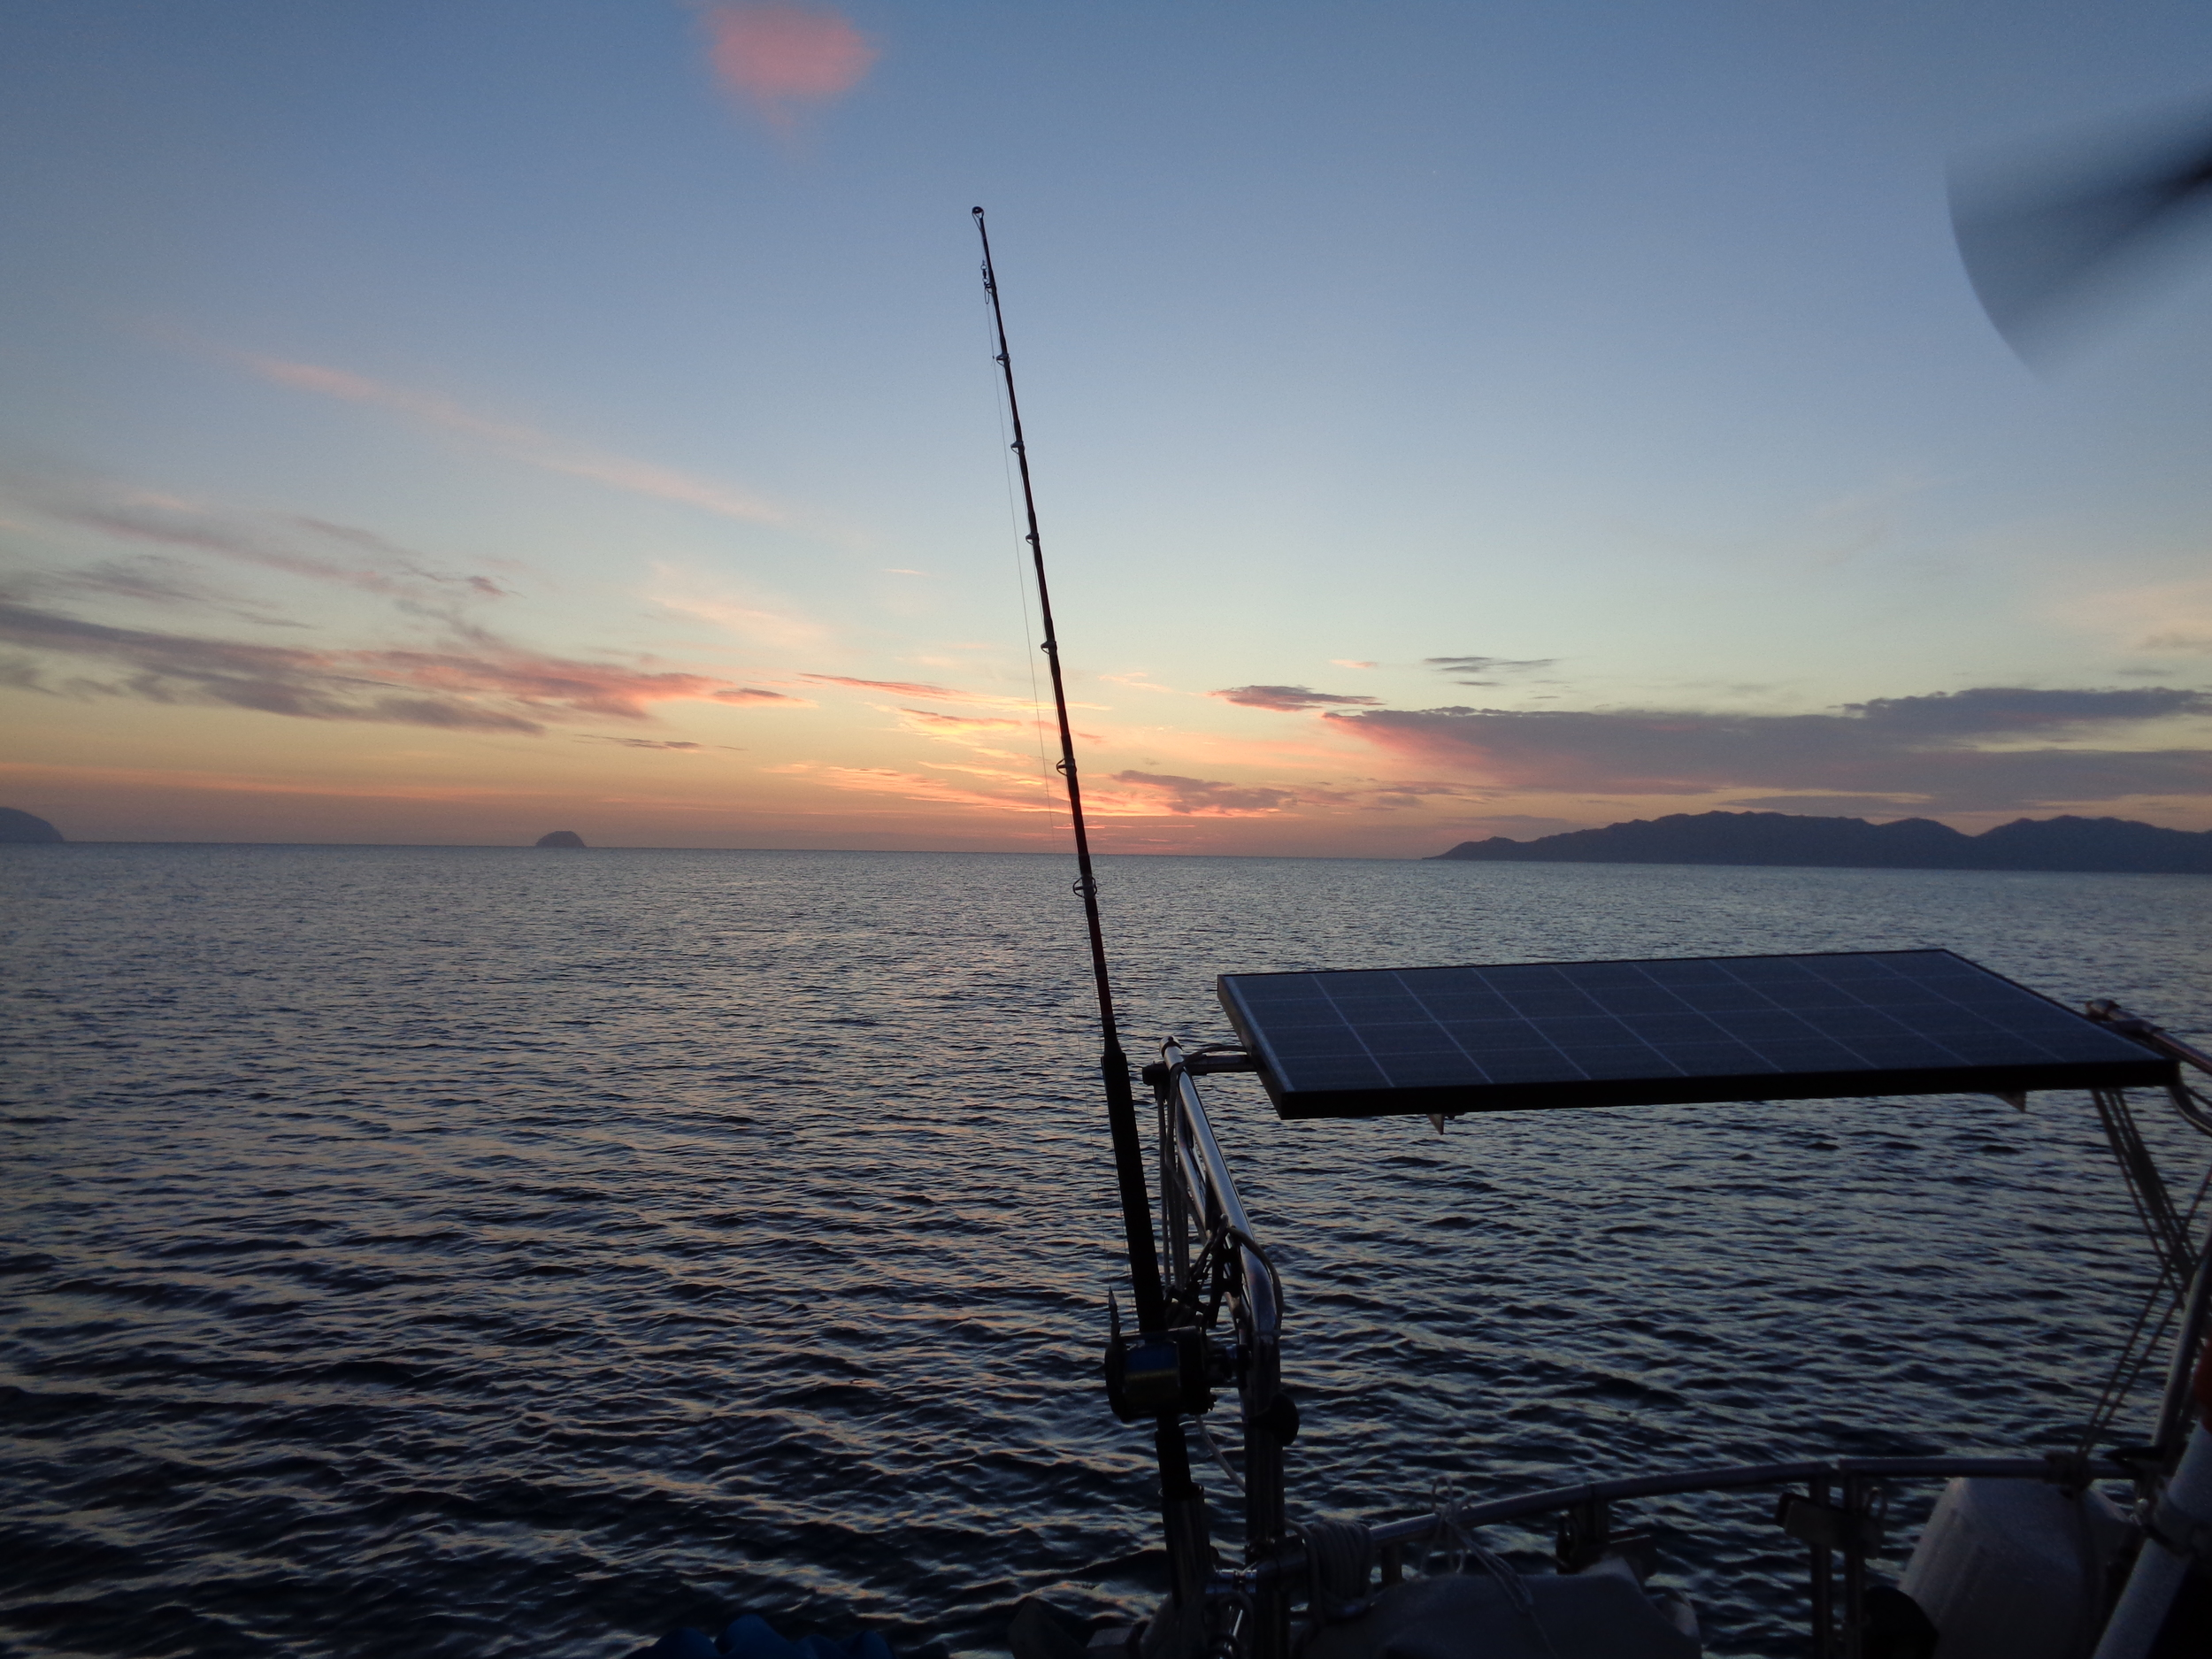 Sunset in the Sea of Cortez